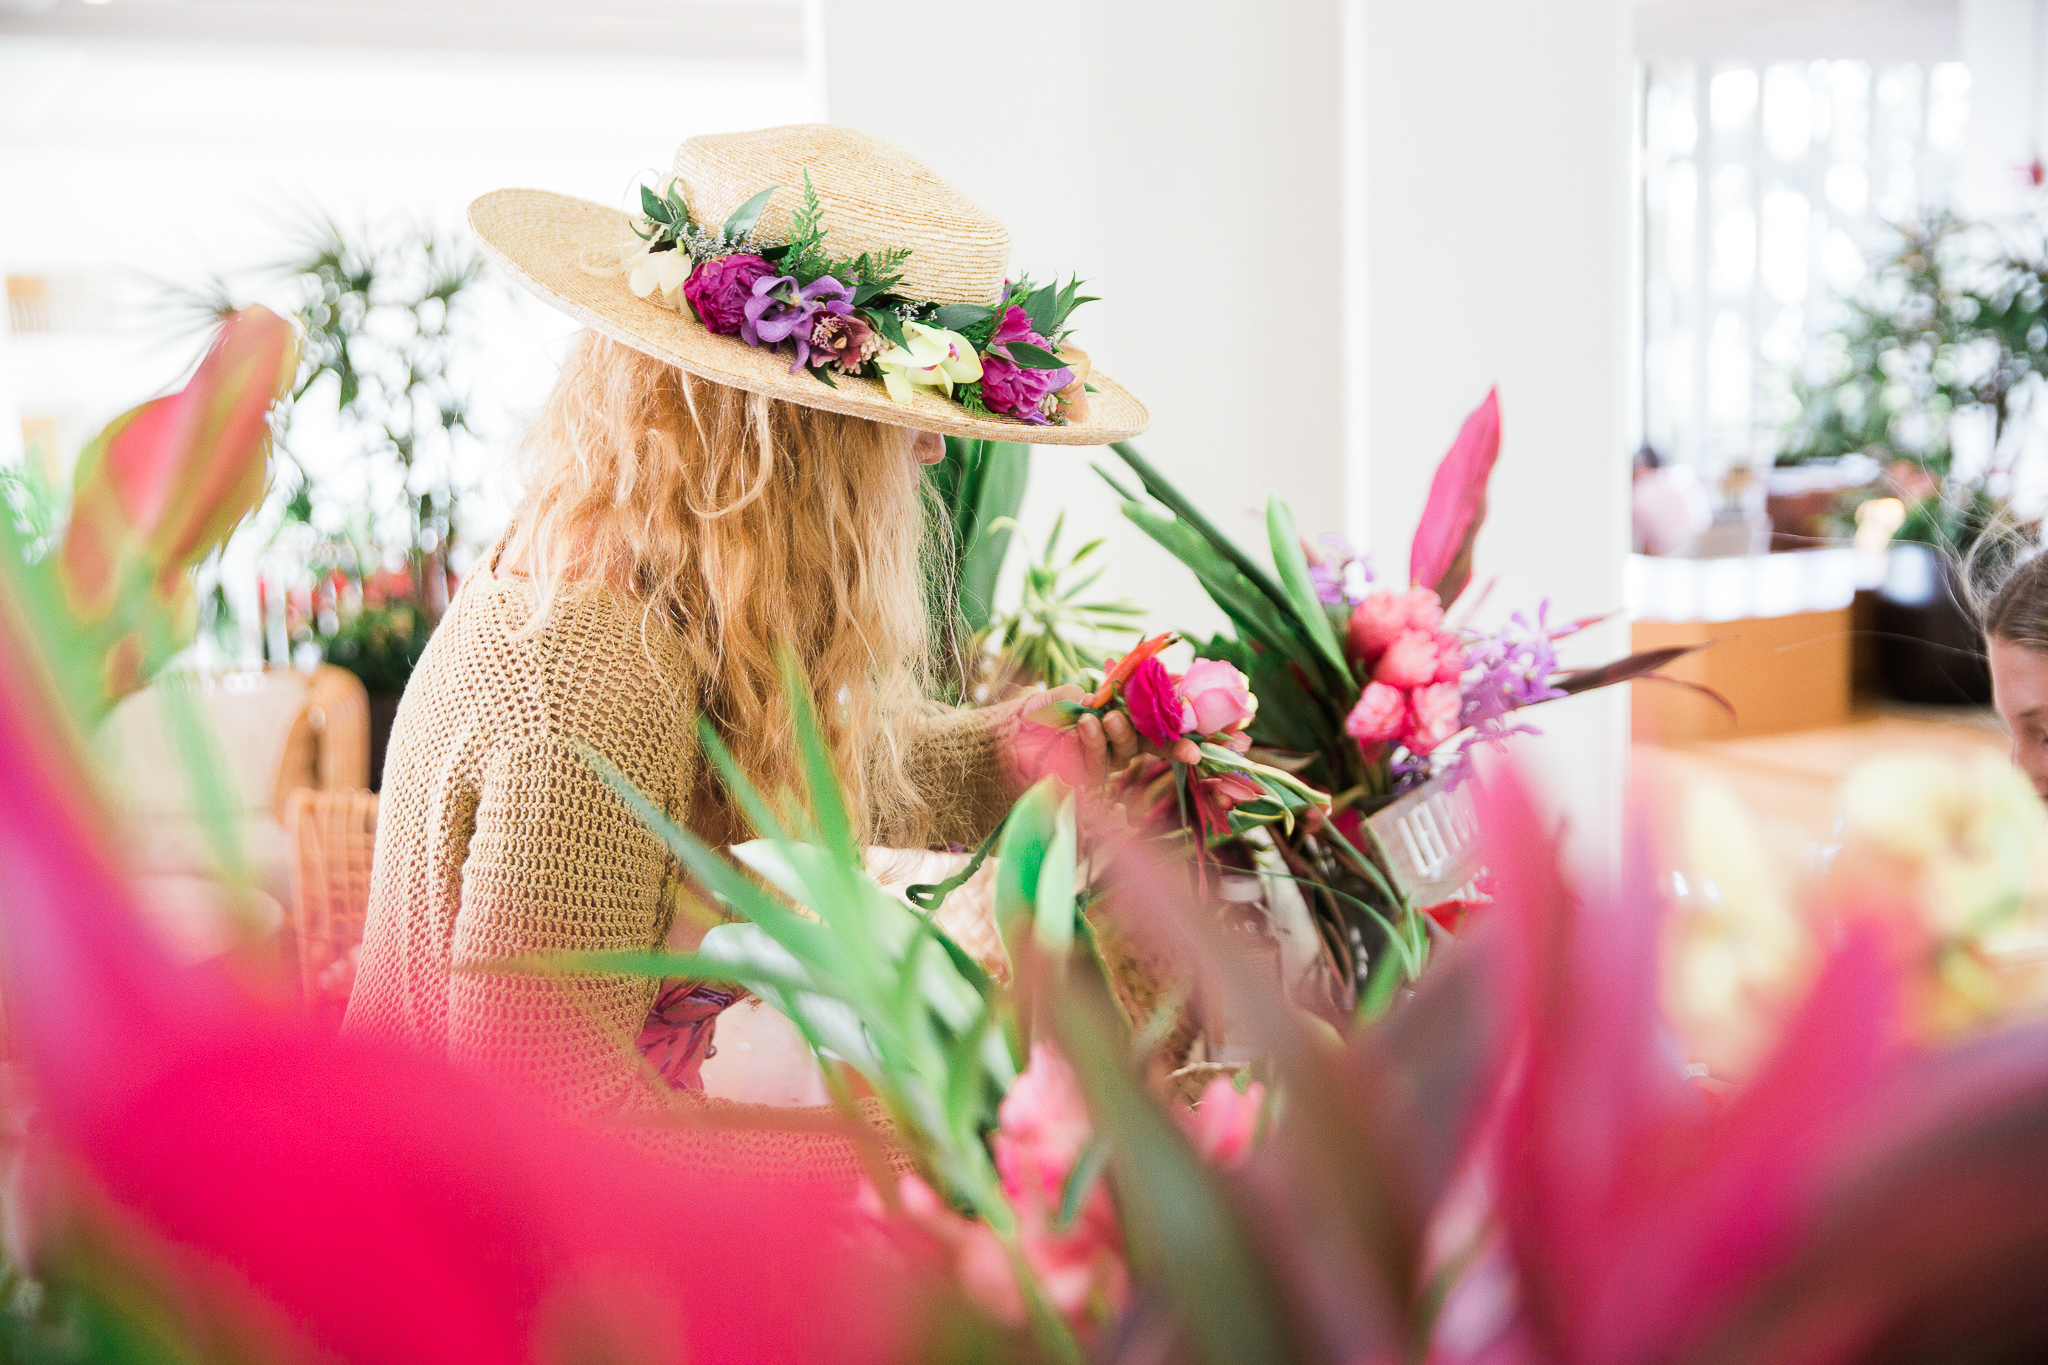 Enjoy an extensive selection of fresh local flowers and lei artfully created by Hawaiian floral artist Pamakane Pico, and design your very own haku lei (floral crown) Thursdays from 10AM-1PM at Four Seasons Resort Oahu at Ko Olina